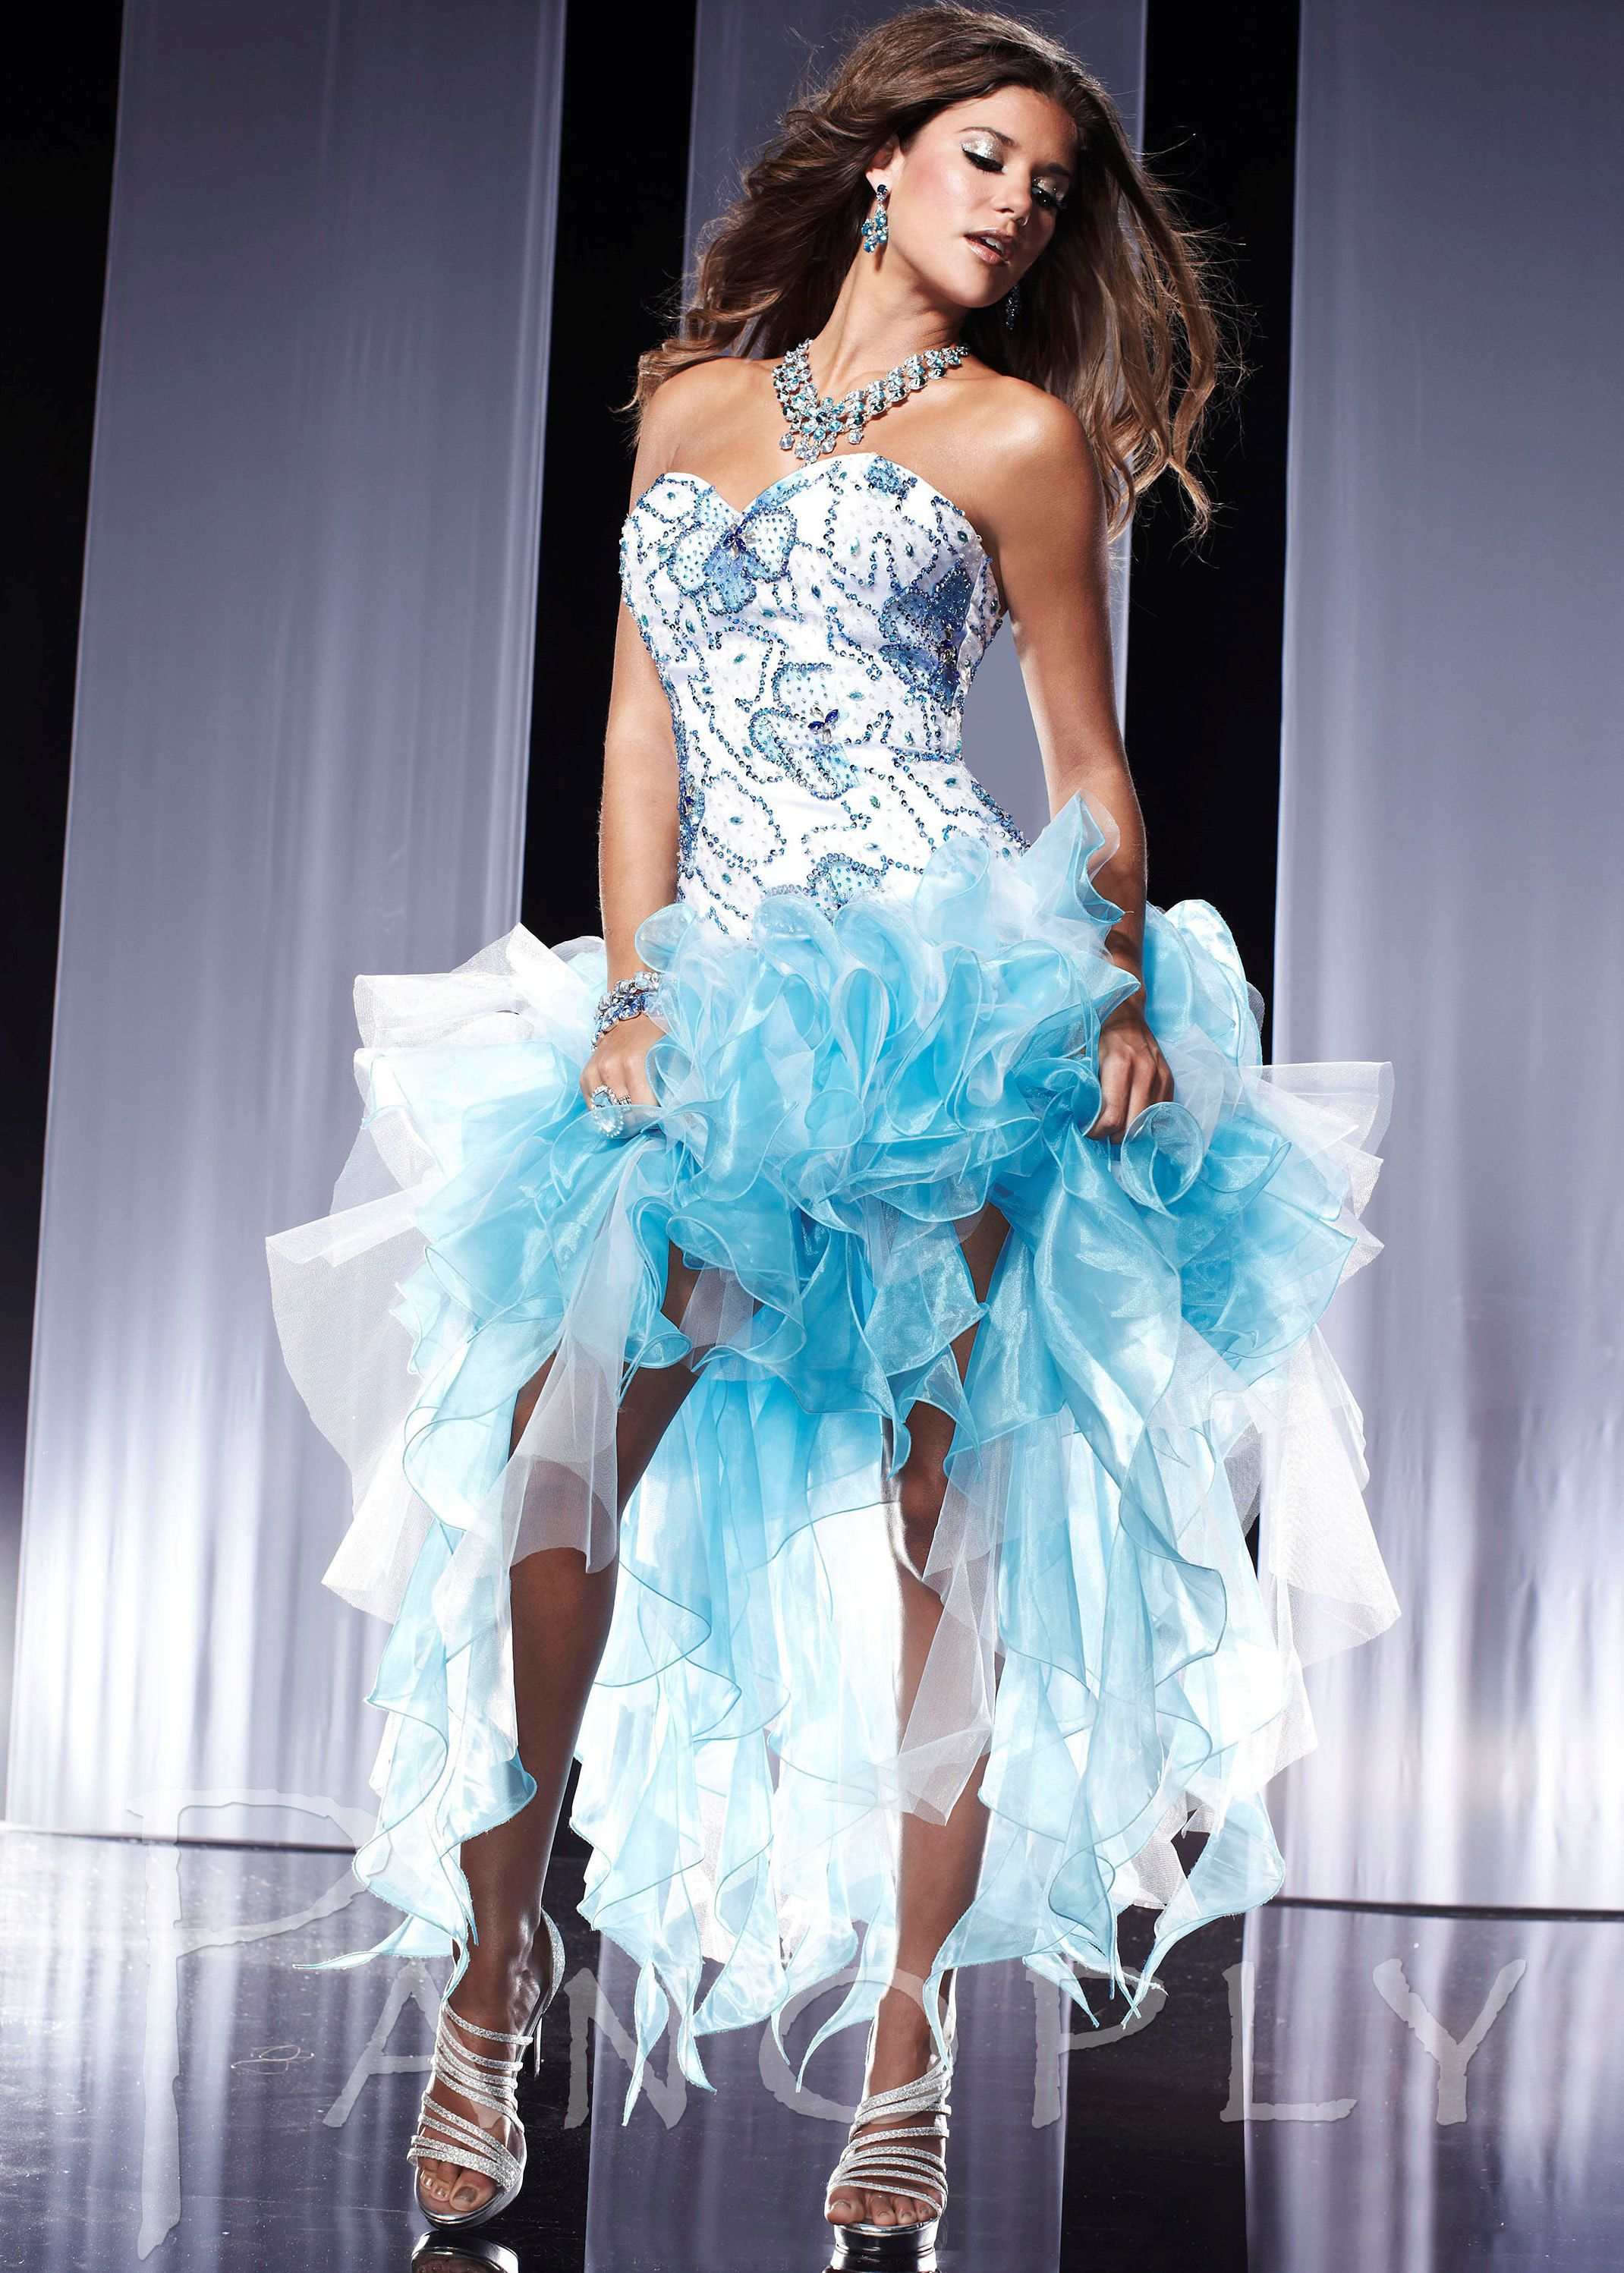 Free shipping on 2013 prom dresses, Panoply 14559 aqua blue ...